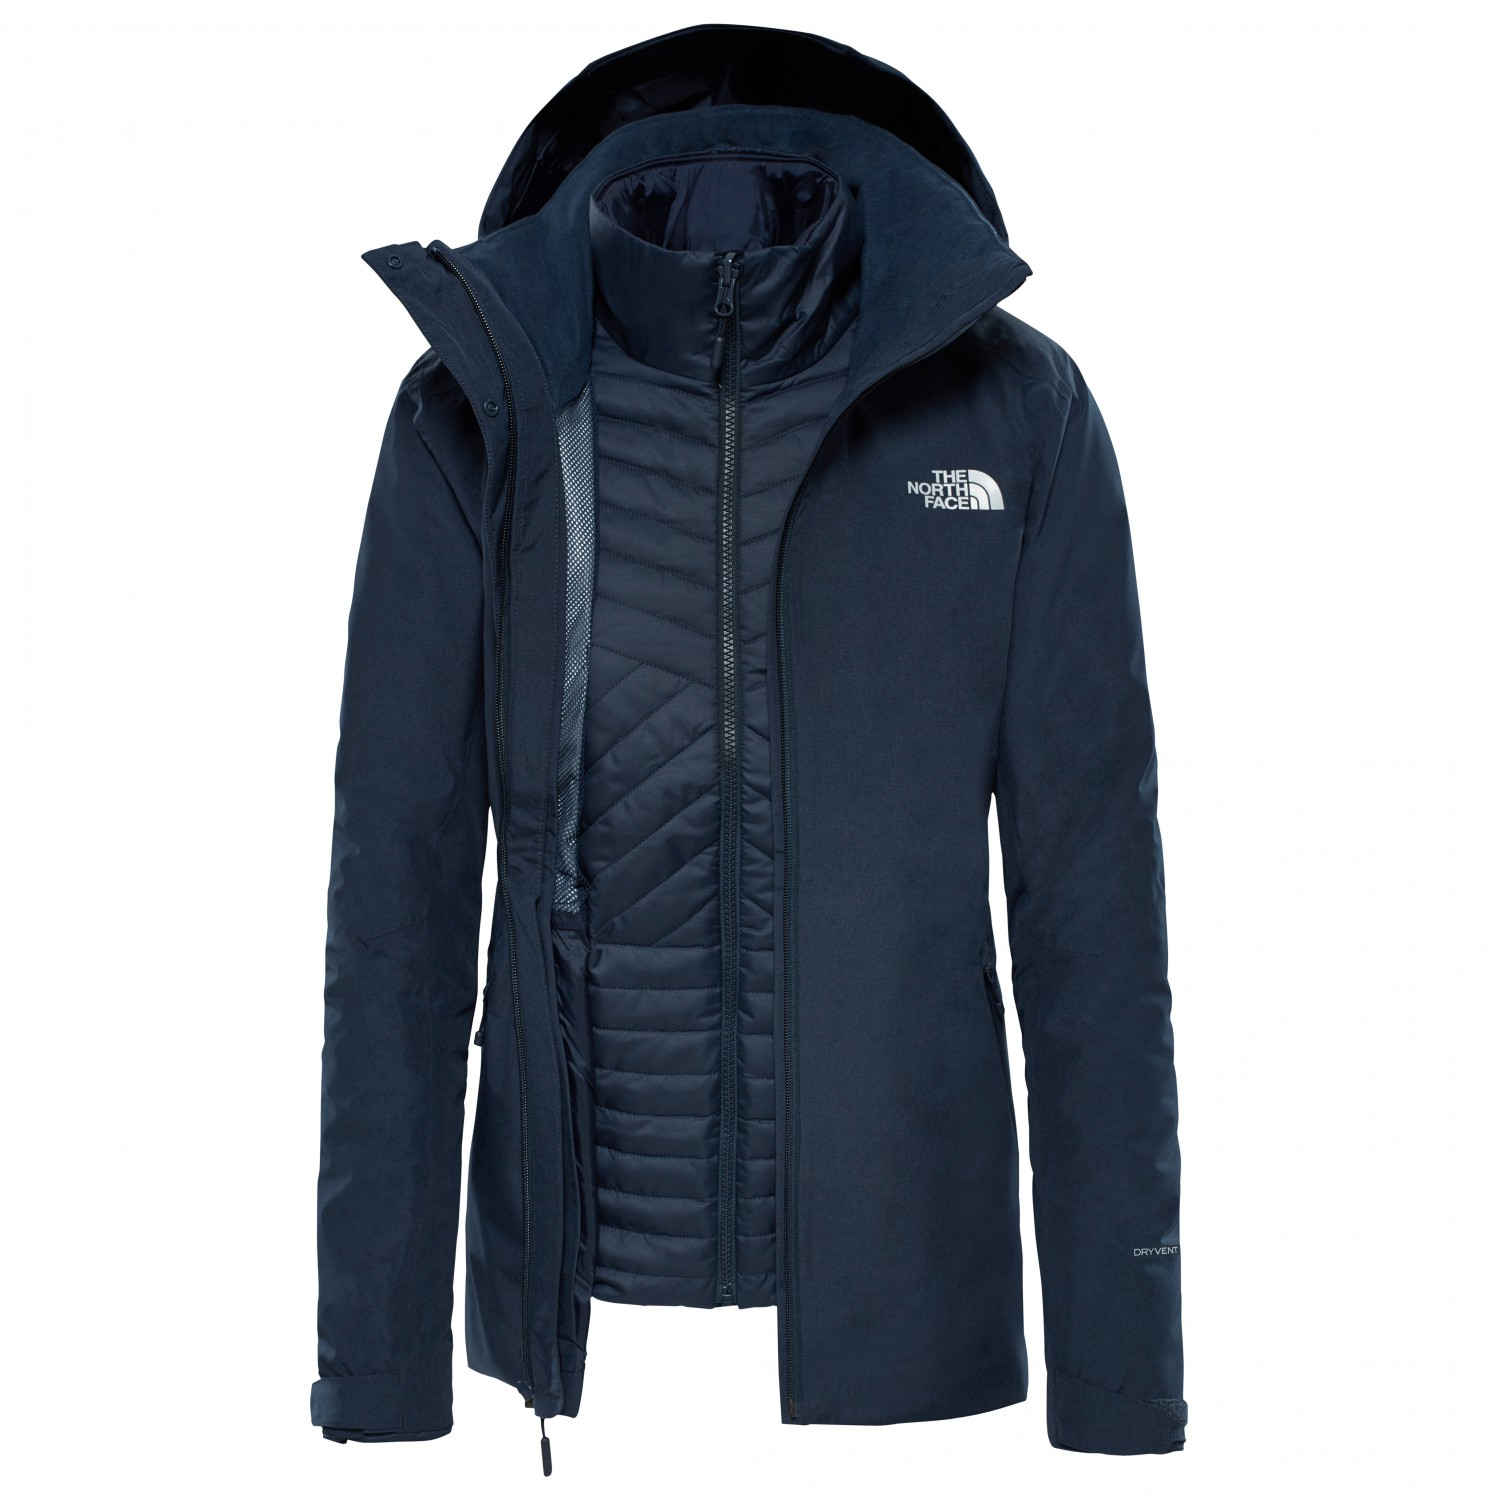 The North Face Inlux Triclimate - 3-In-1 Jacket Women s  800dec7db4f8